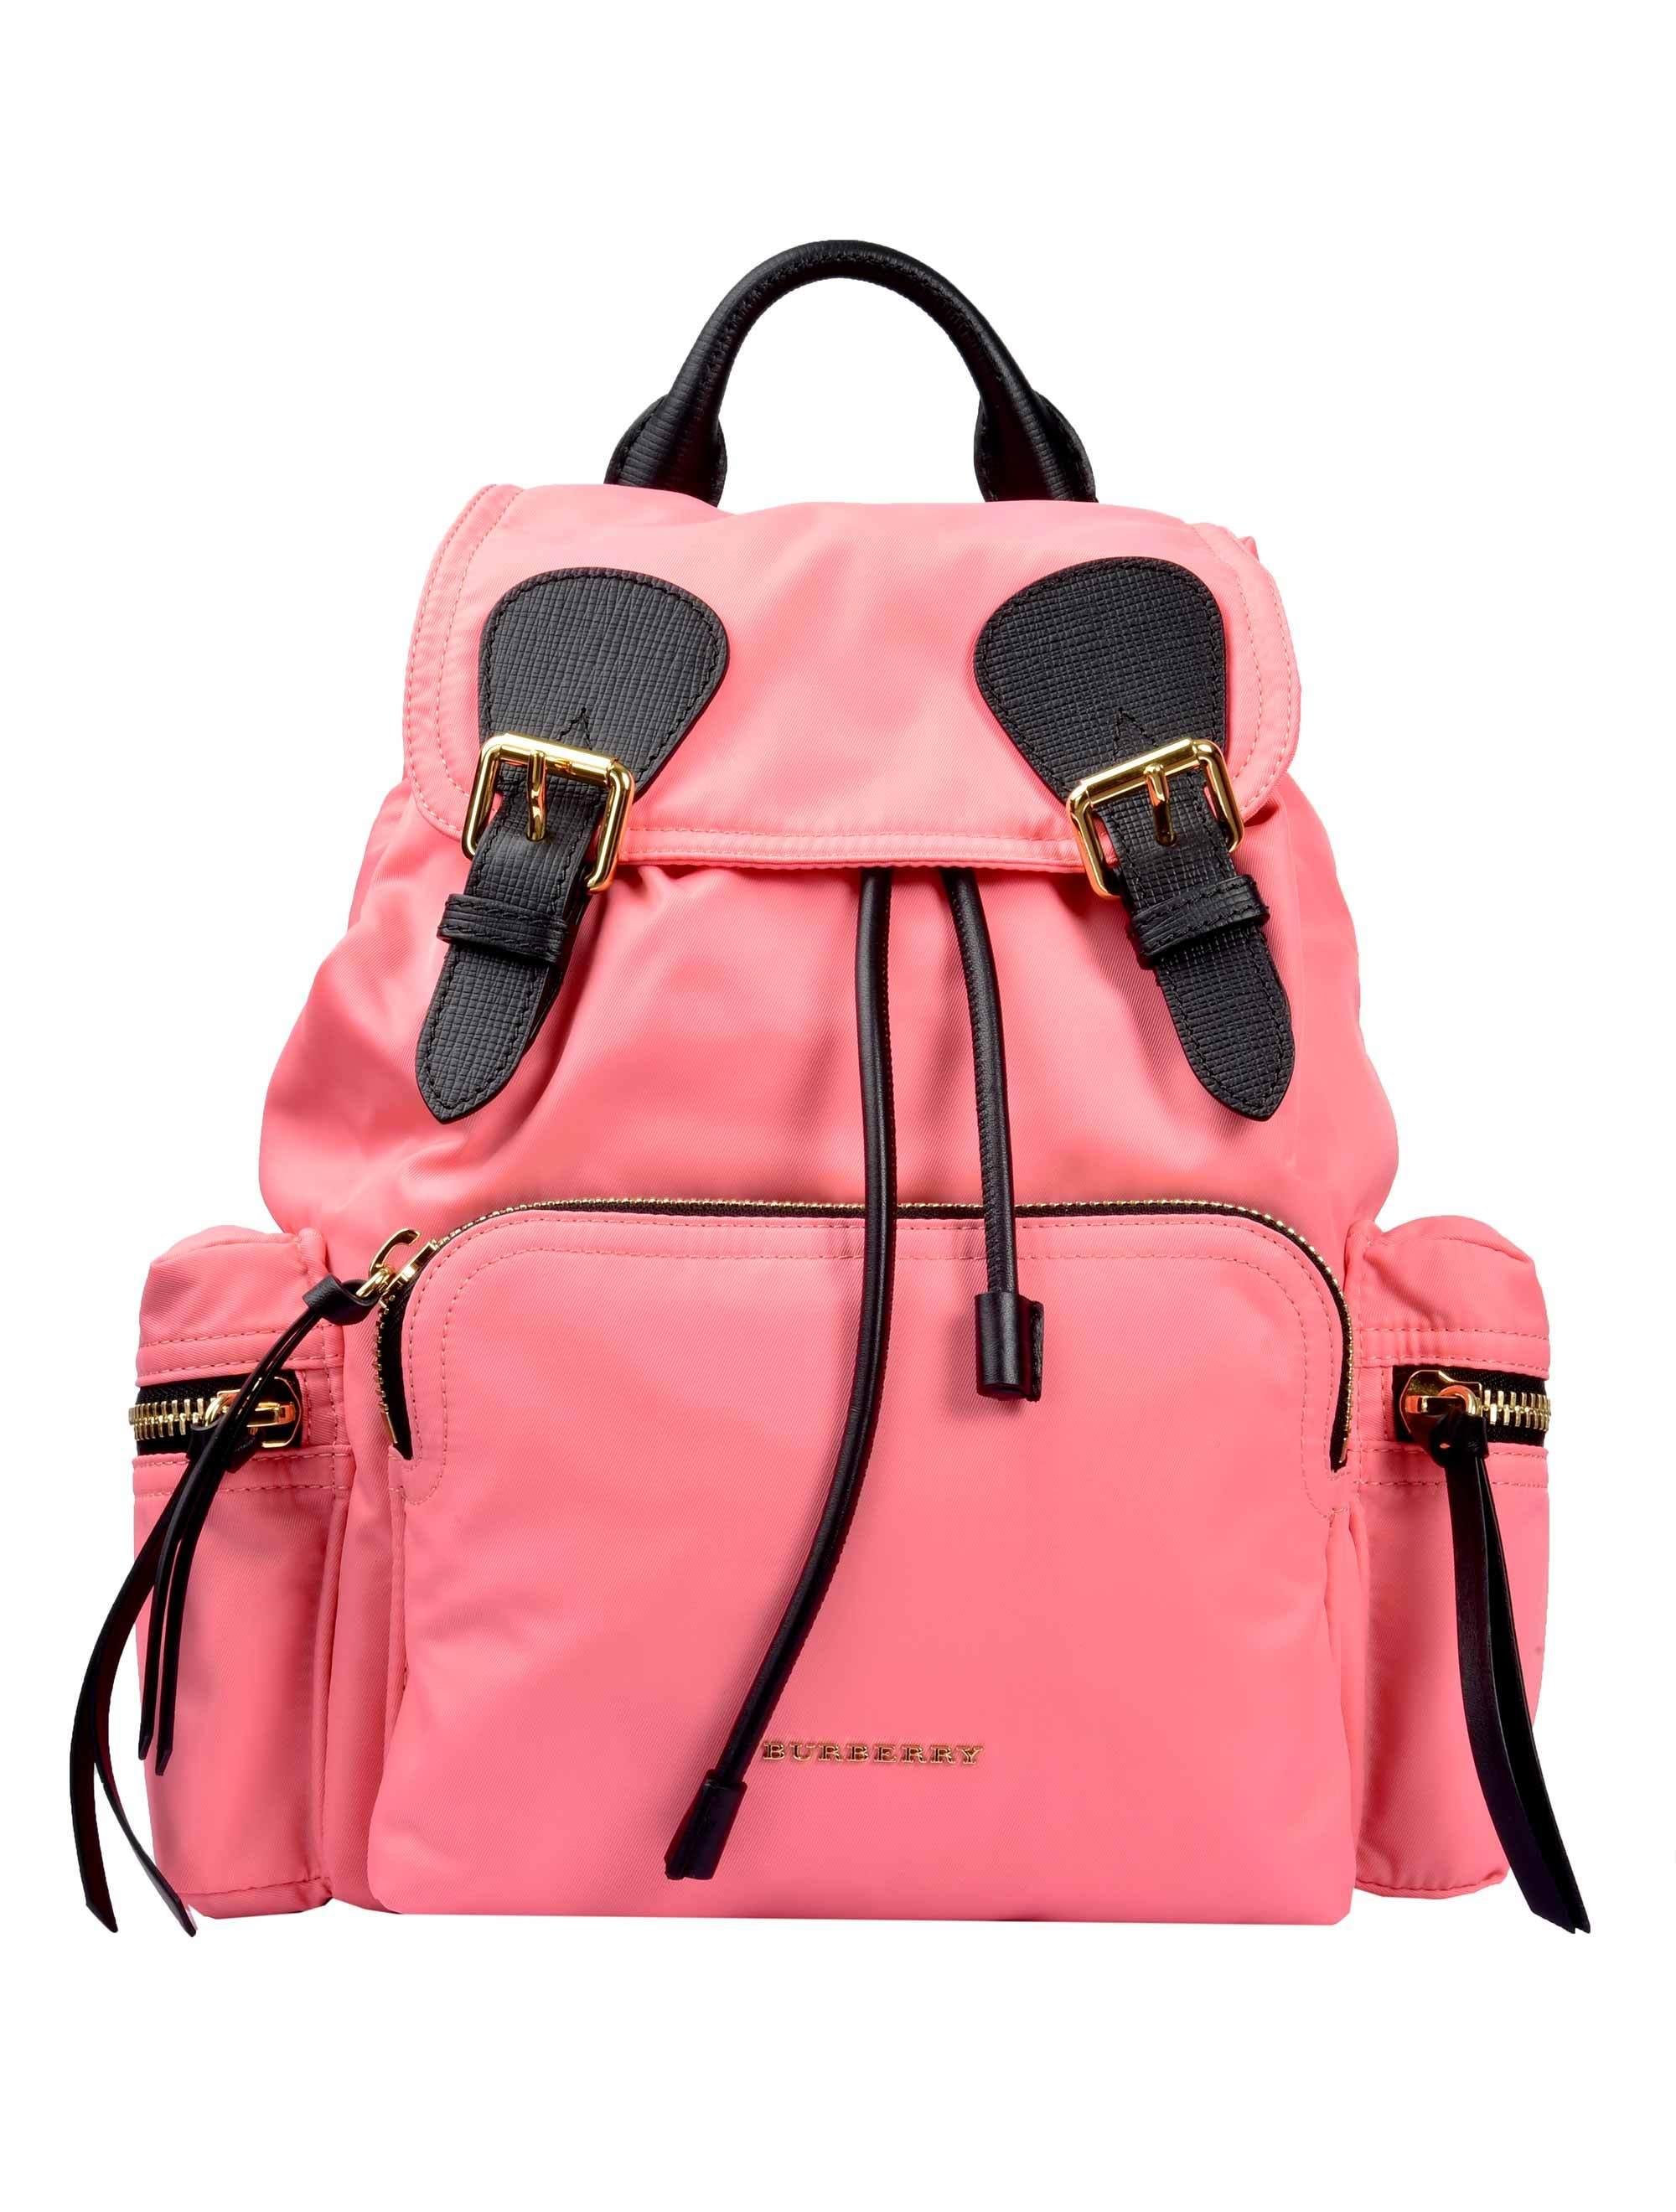 847f4041c5c7 Burberry The Medium Rucksack In Technical Nylon And Leather In Pink ...